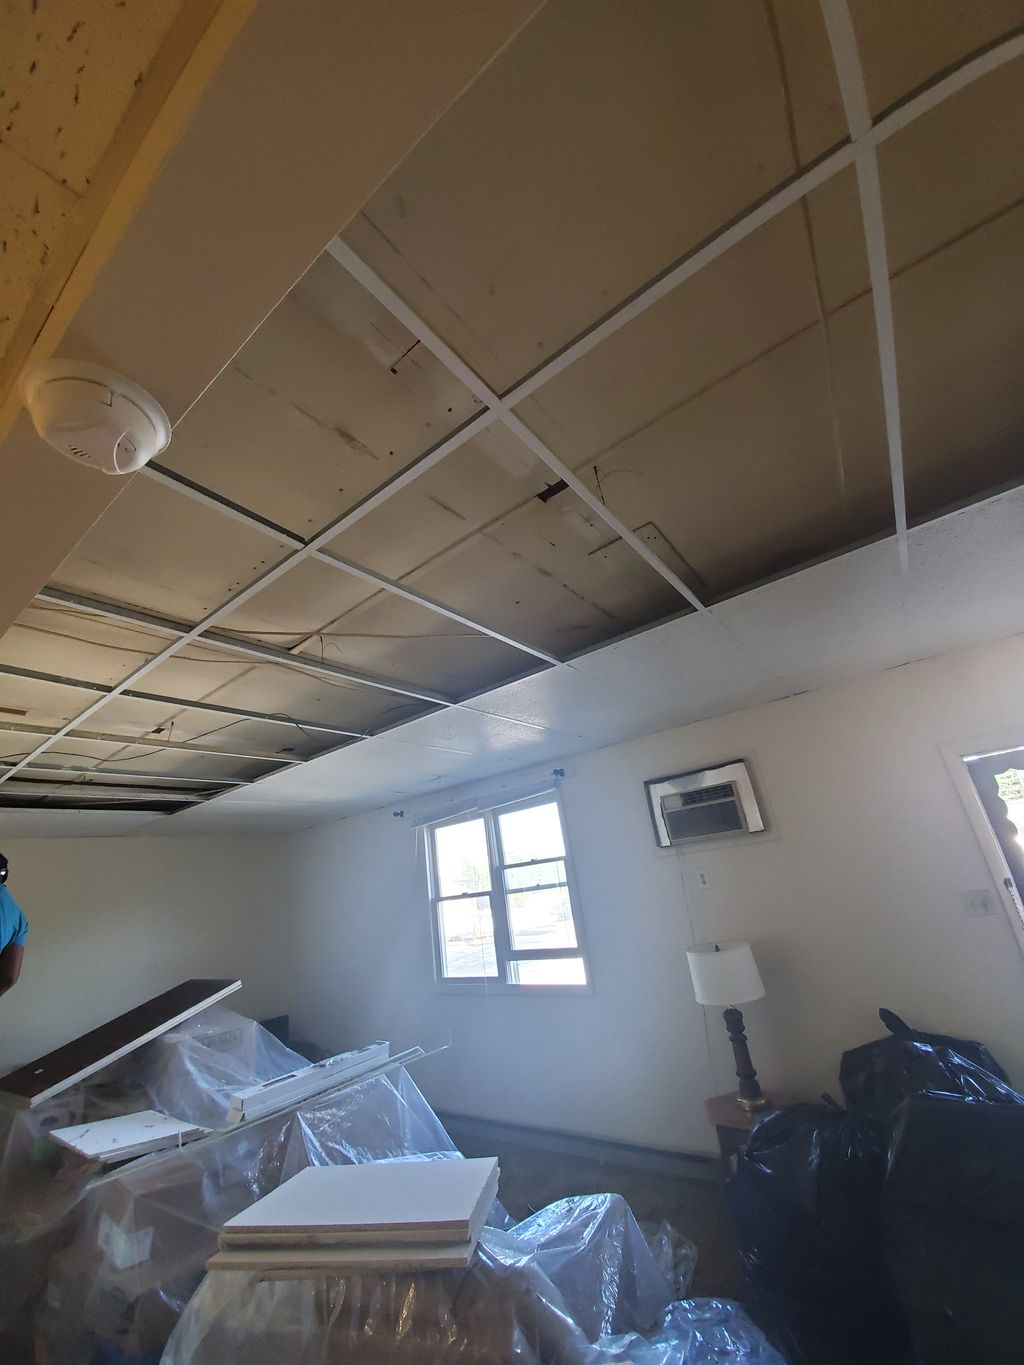 Ceiling Tile Removal and Replacement and Painting Metal Strips